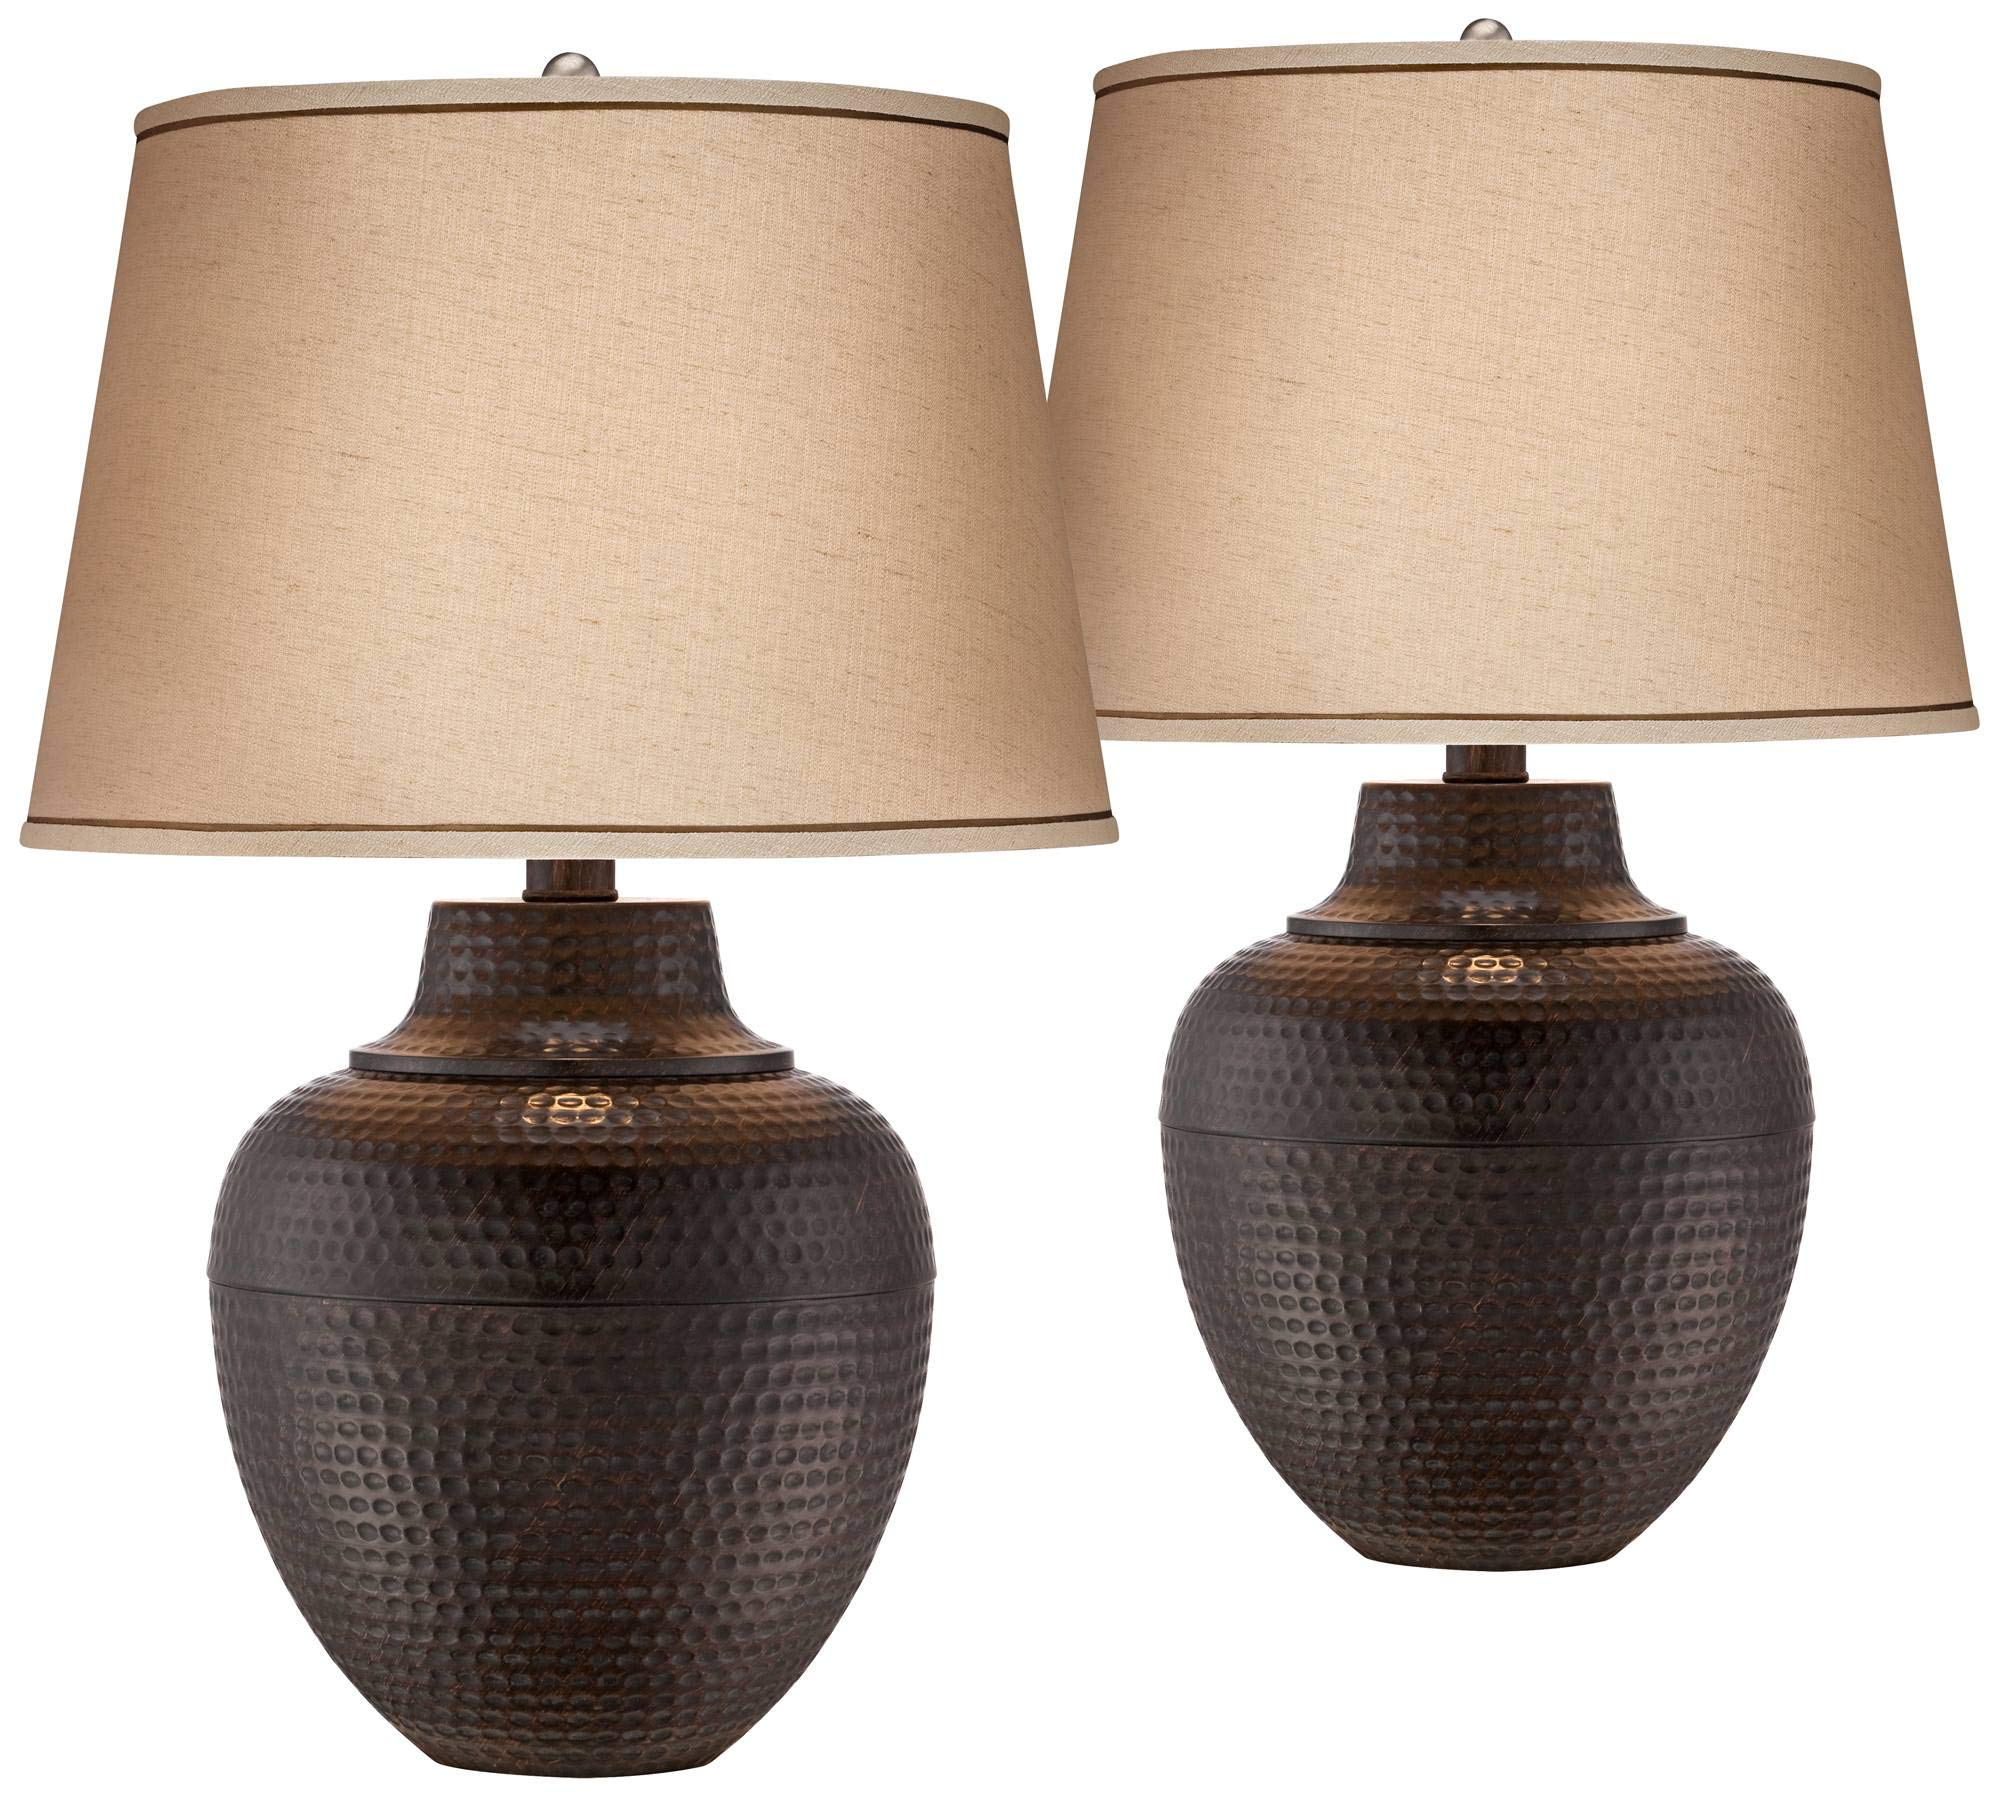 Brighton Rustic Table Lamps Set of 2 Hammered Bronze Metal Pot Beige Linen Drum Shade for Living Room Family Bedroom Bedside - Barnes and Ivy